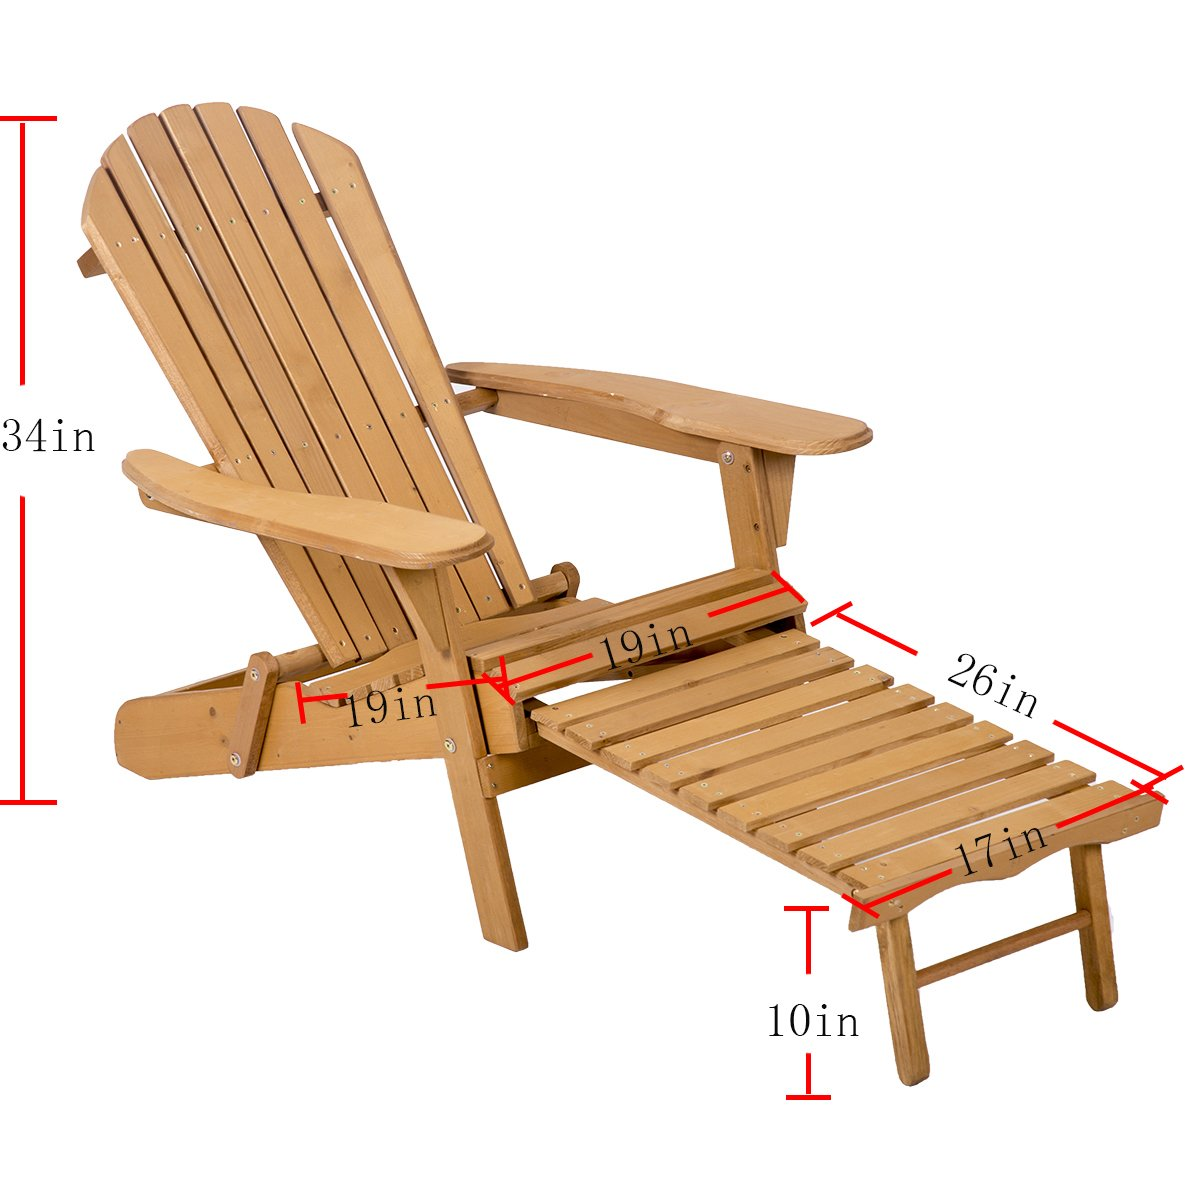 FDW Outdoor Wood Adirondack Chair Foldable w/Pull Out Ottoman Patio Furniture by FDW (Image #6)